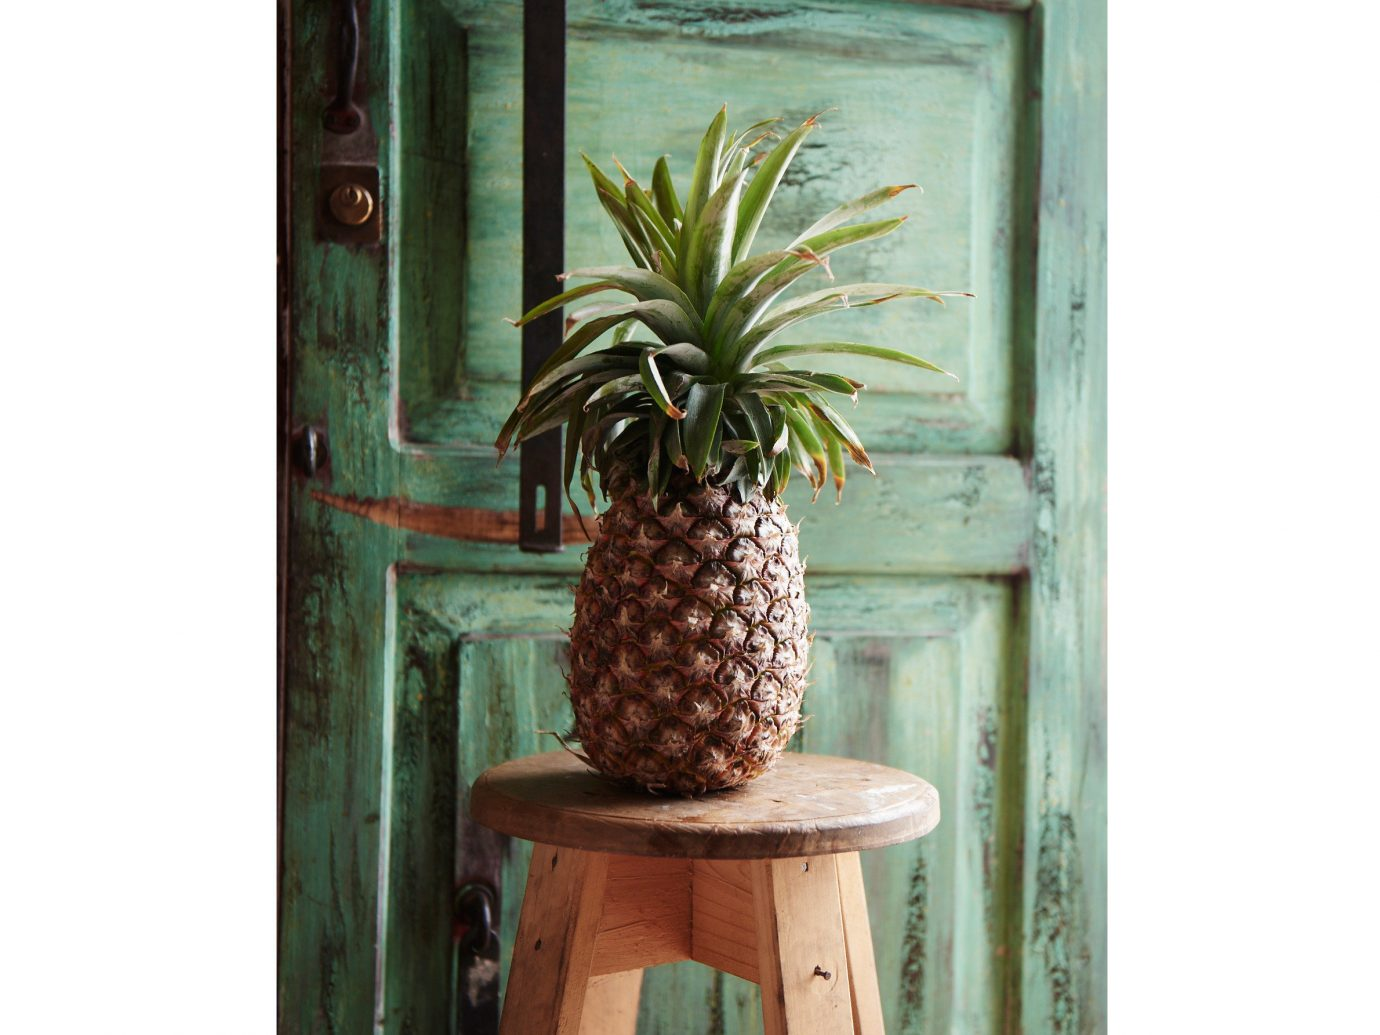 Trip Ideas plant window produce land plant arecales food pineapple fruit flowering plant carving bromeliaceae